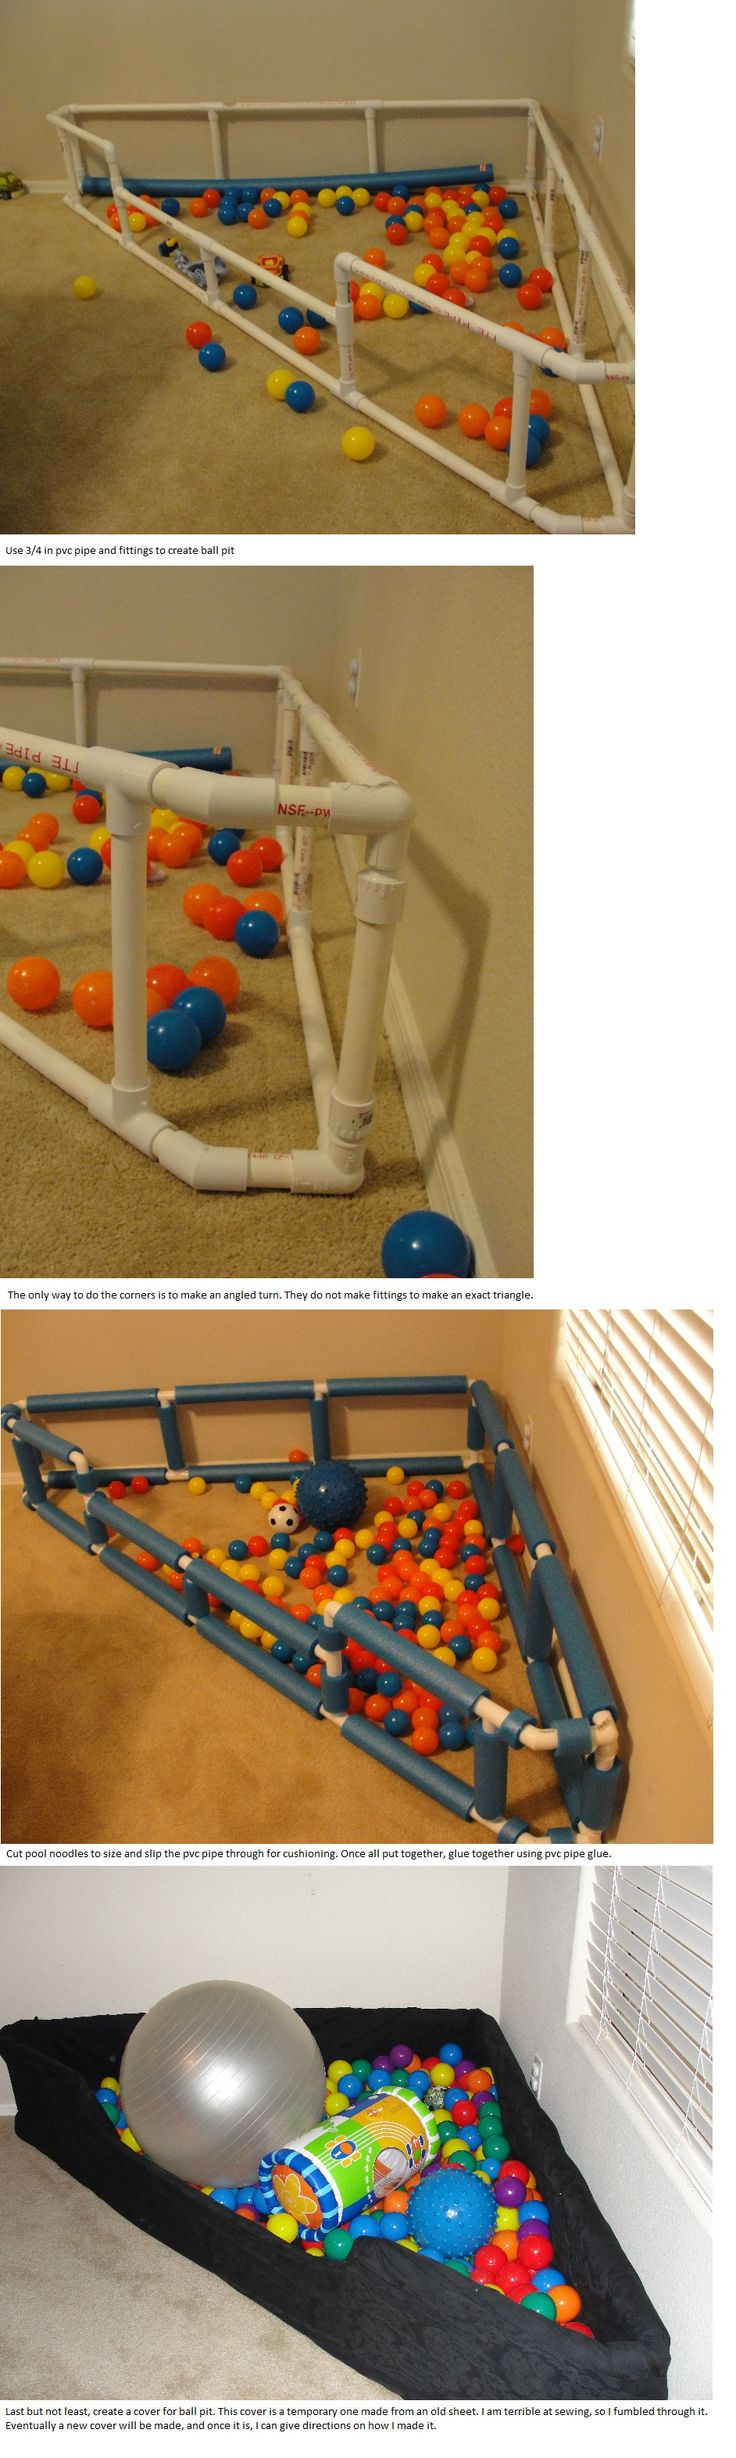 DIY ball pit for any sensory or calming room. use 3/4 in pvc pipe, pool noodles for cushion, pvc glue, and then an old sheet for the cover.